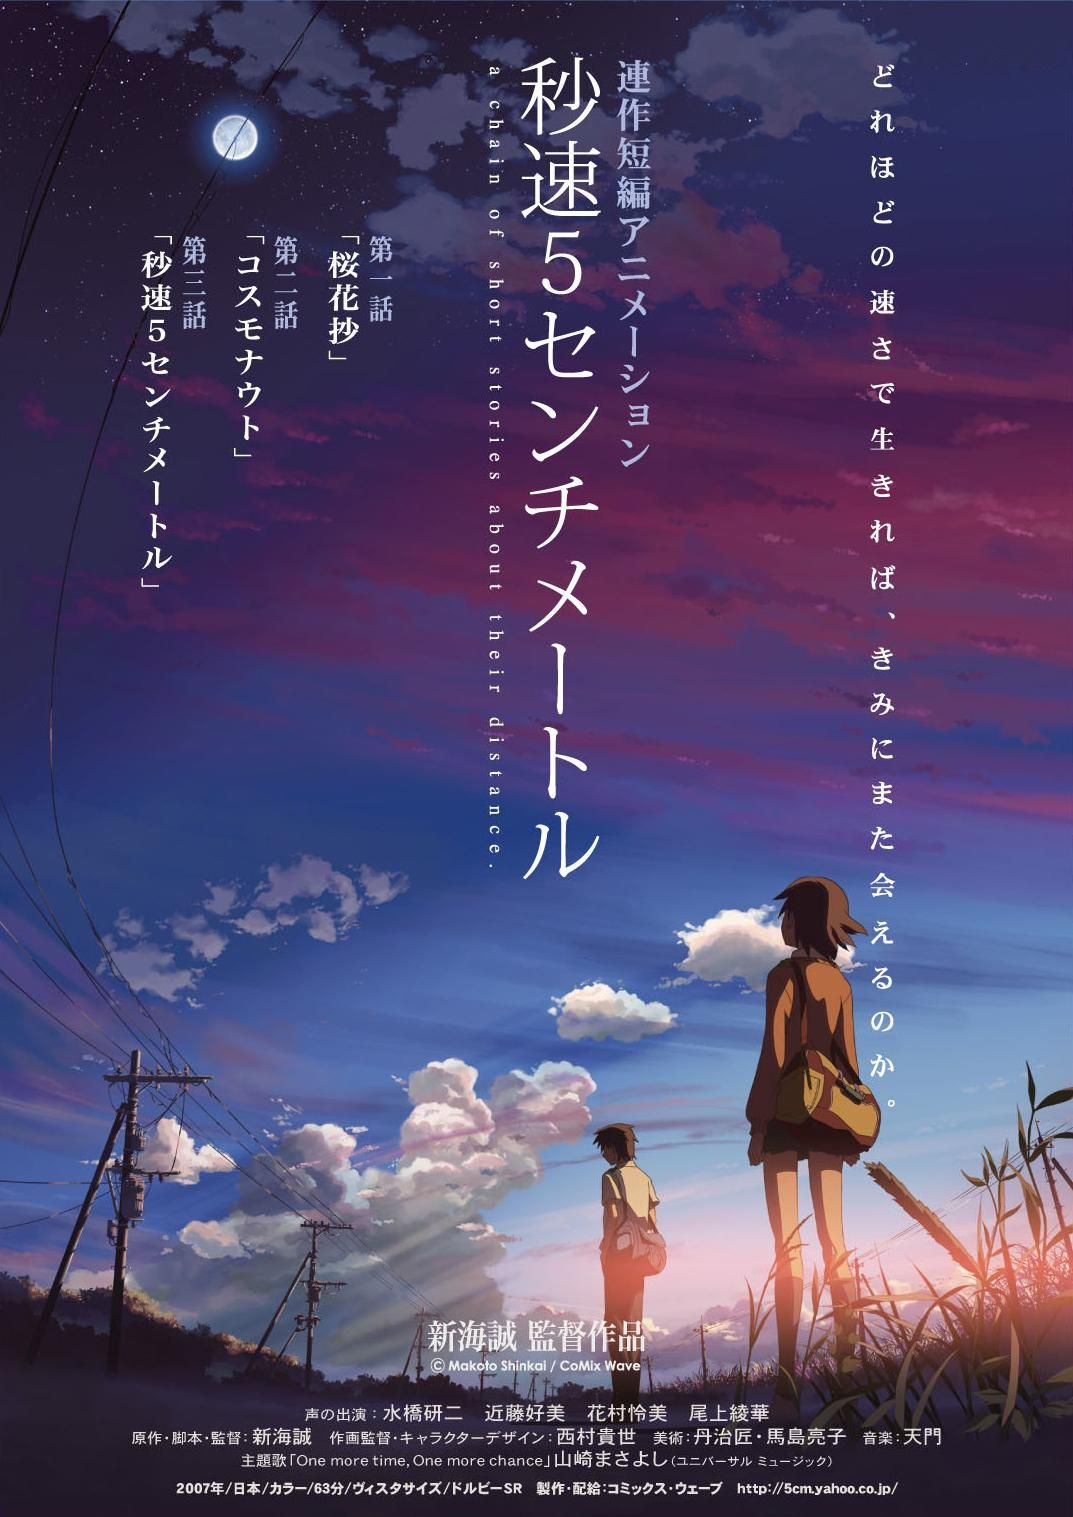 5 Centimeters Per Second (2007) Movie posters, Two